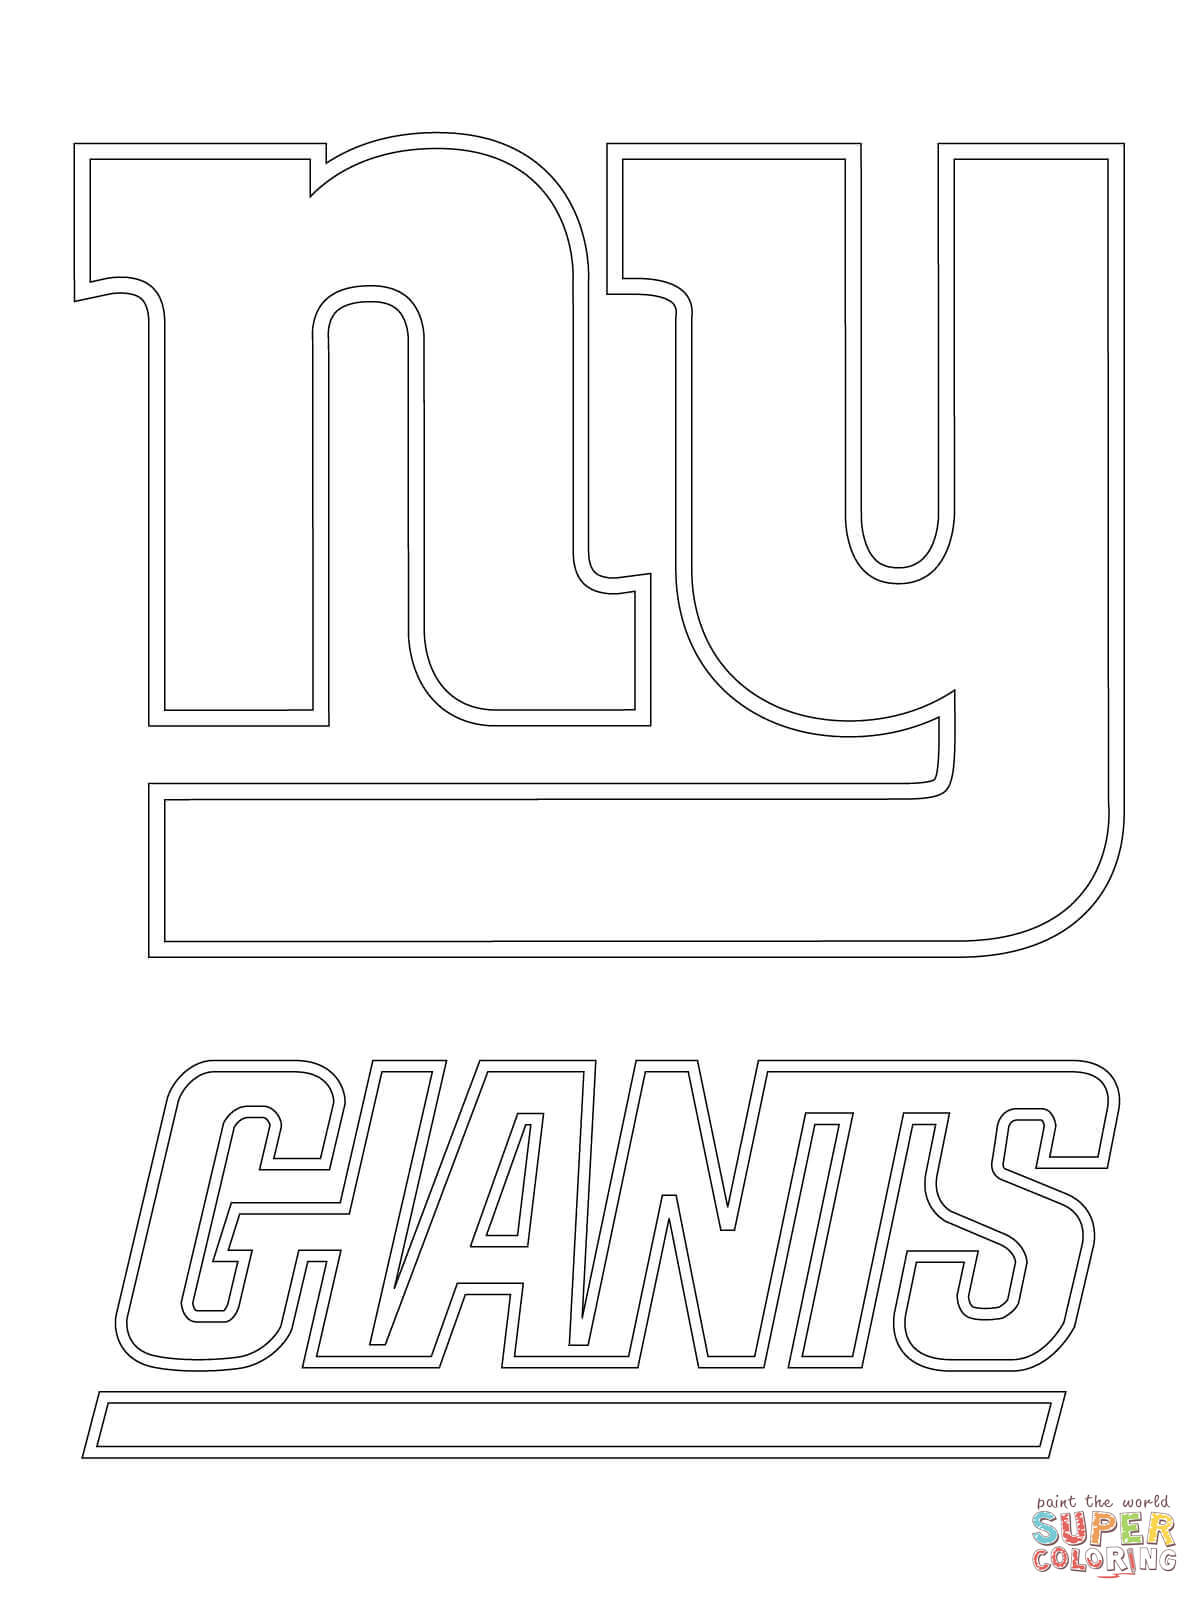 giants coloring pages baseball giants baseball coloring pages coloring pages baseball baseball coloring giants pages